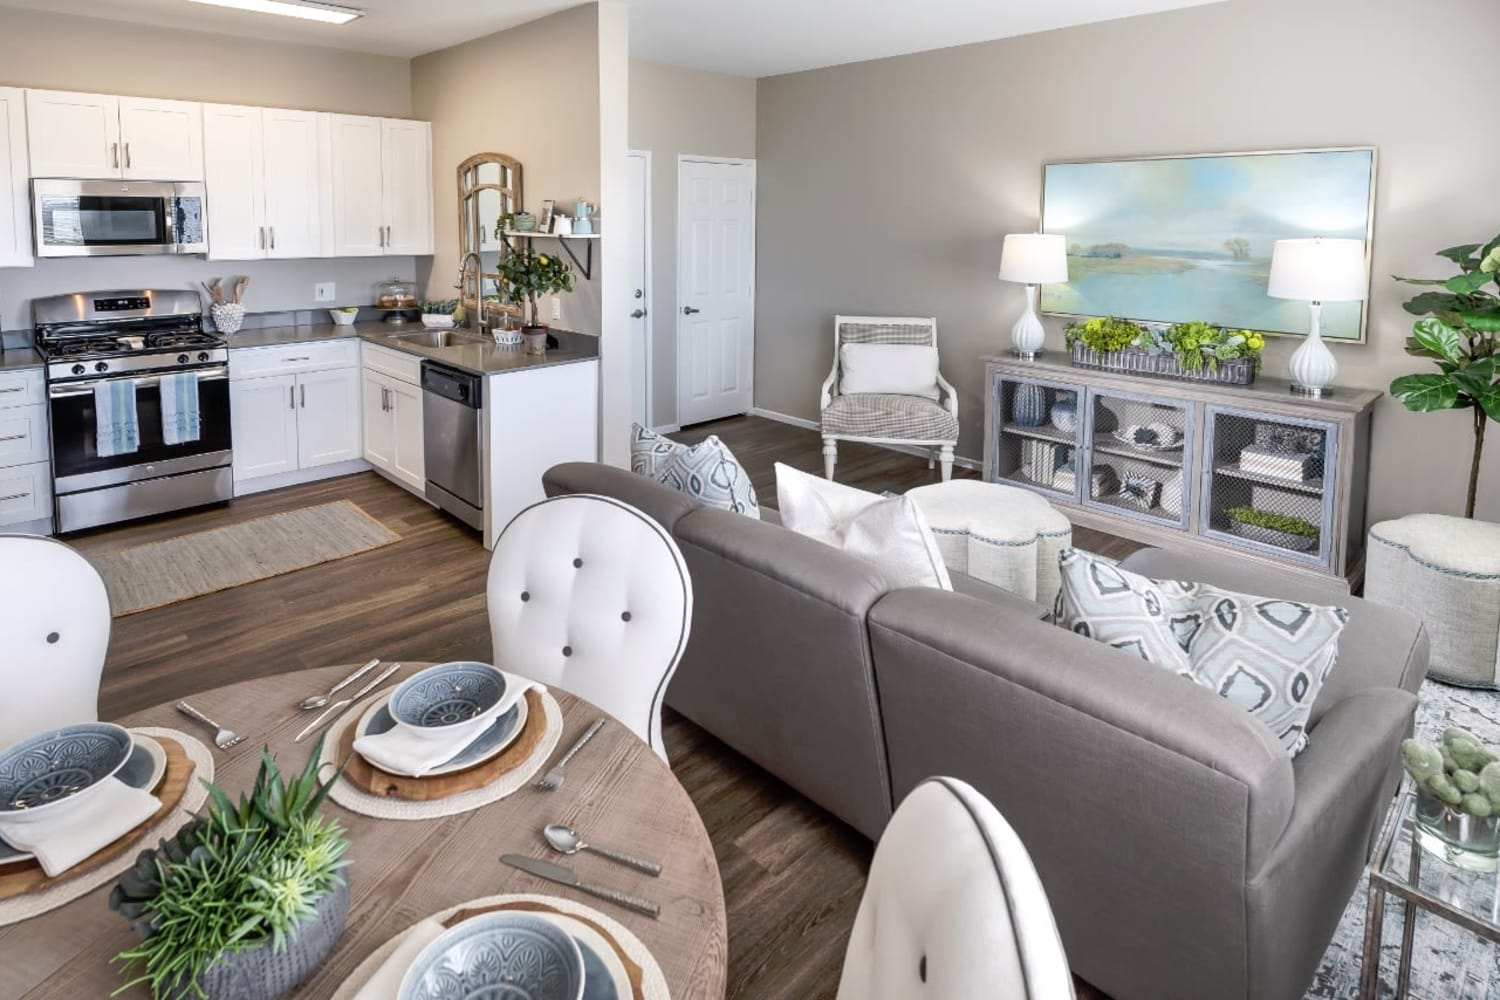 Well appointed kitchen, dining room and living room at Madrid Apartments in Mission Viejo, California